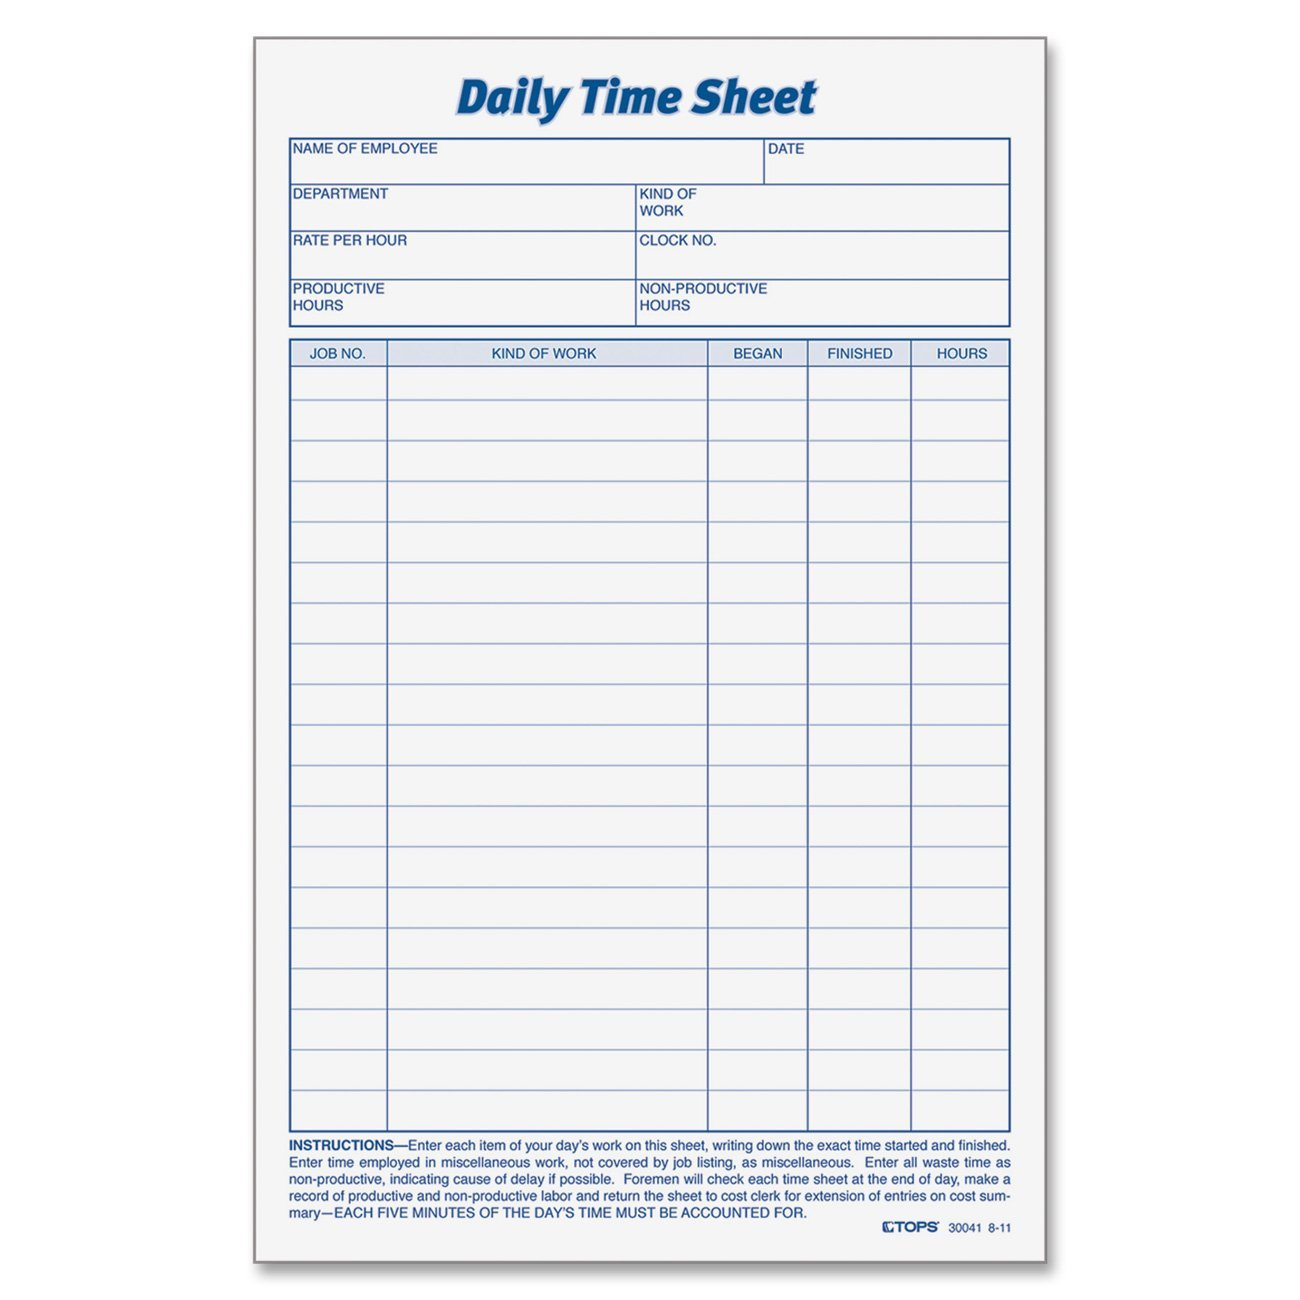 27 Daily Log Templates in Word